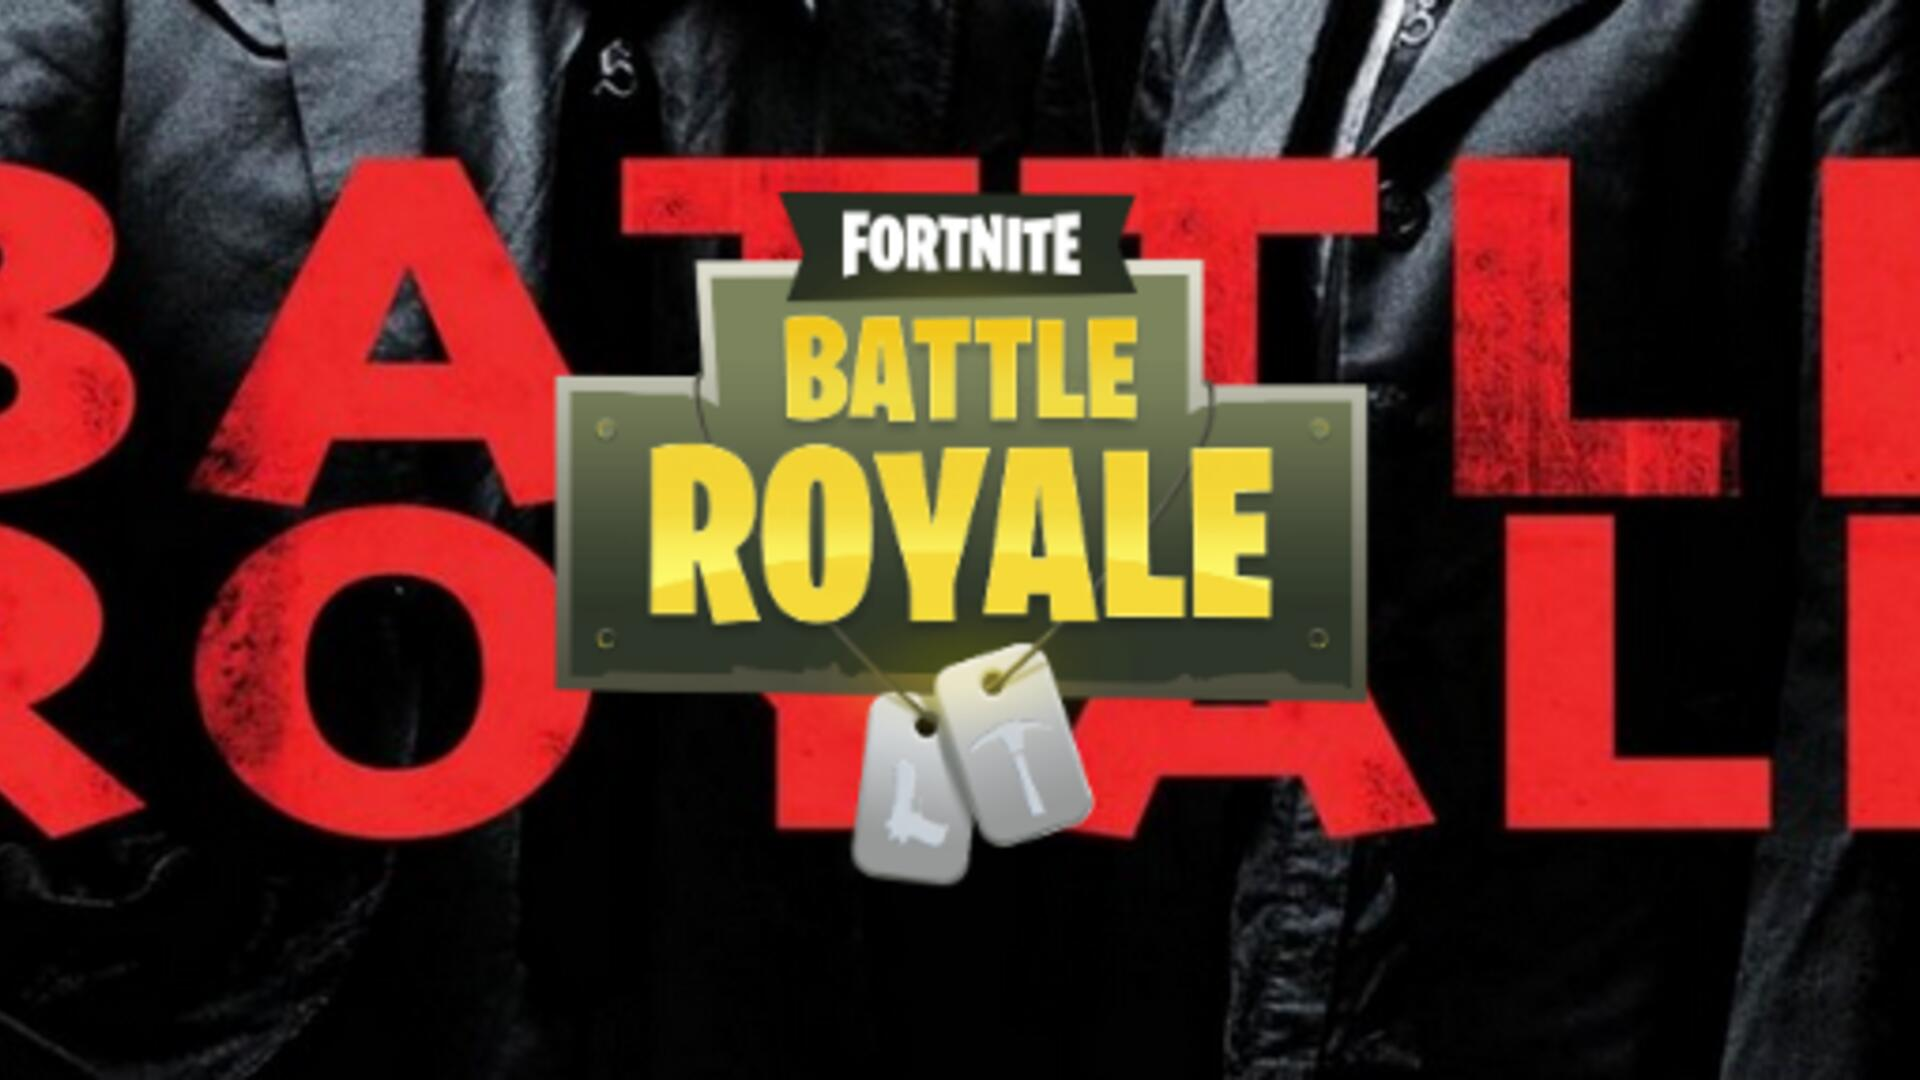 Marketers in Spain are Trying Real Hard to Connect Battle Royale Novel to Fortnite